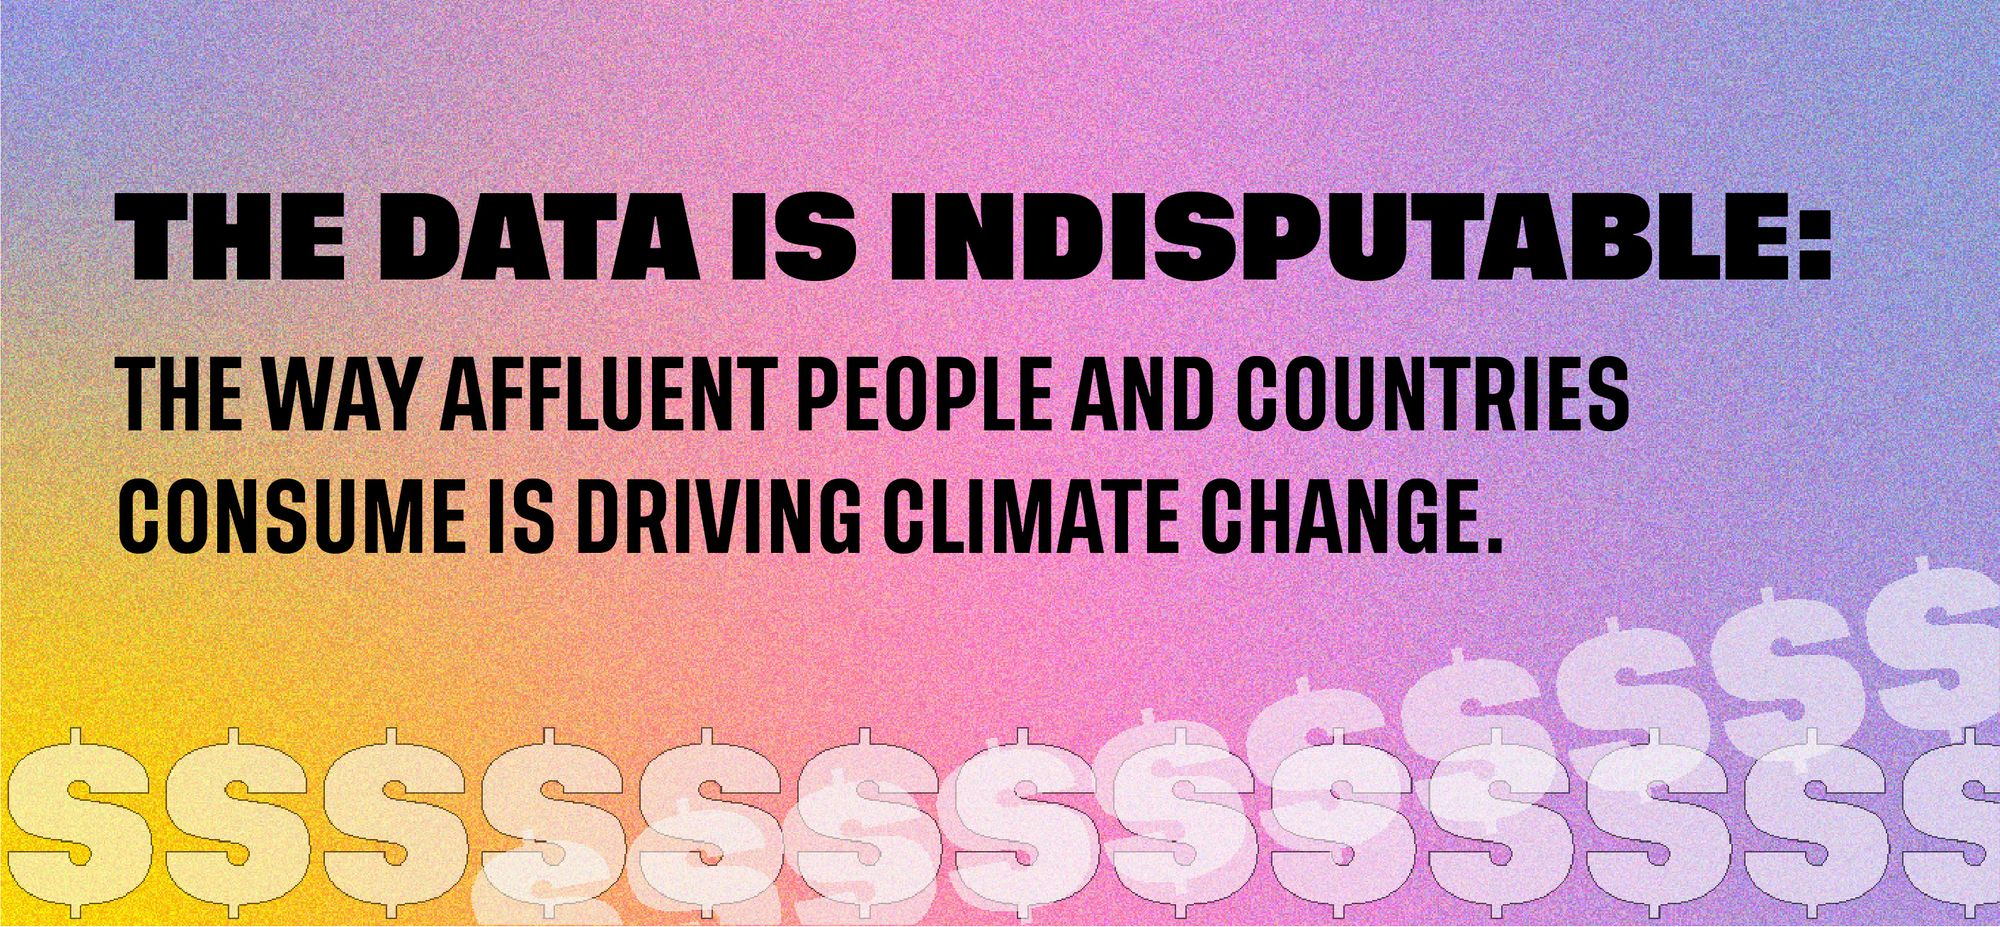 The data are indisputable: the way affluent people and countries consume is disproportionately driving climate change.